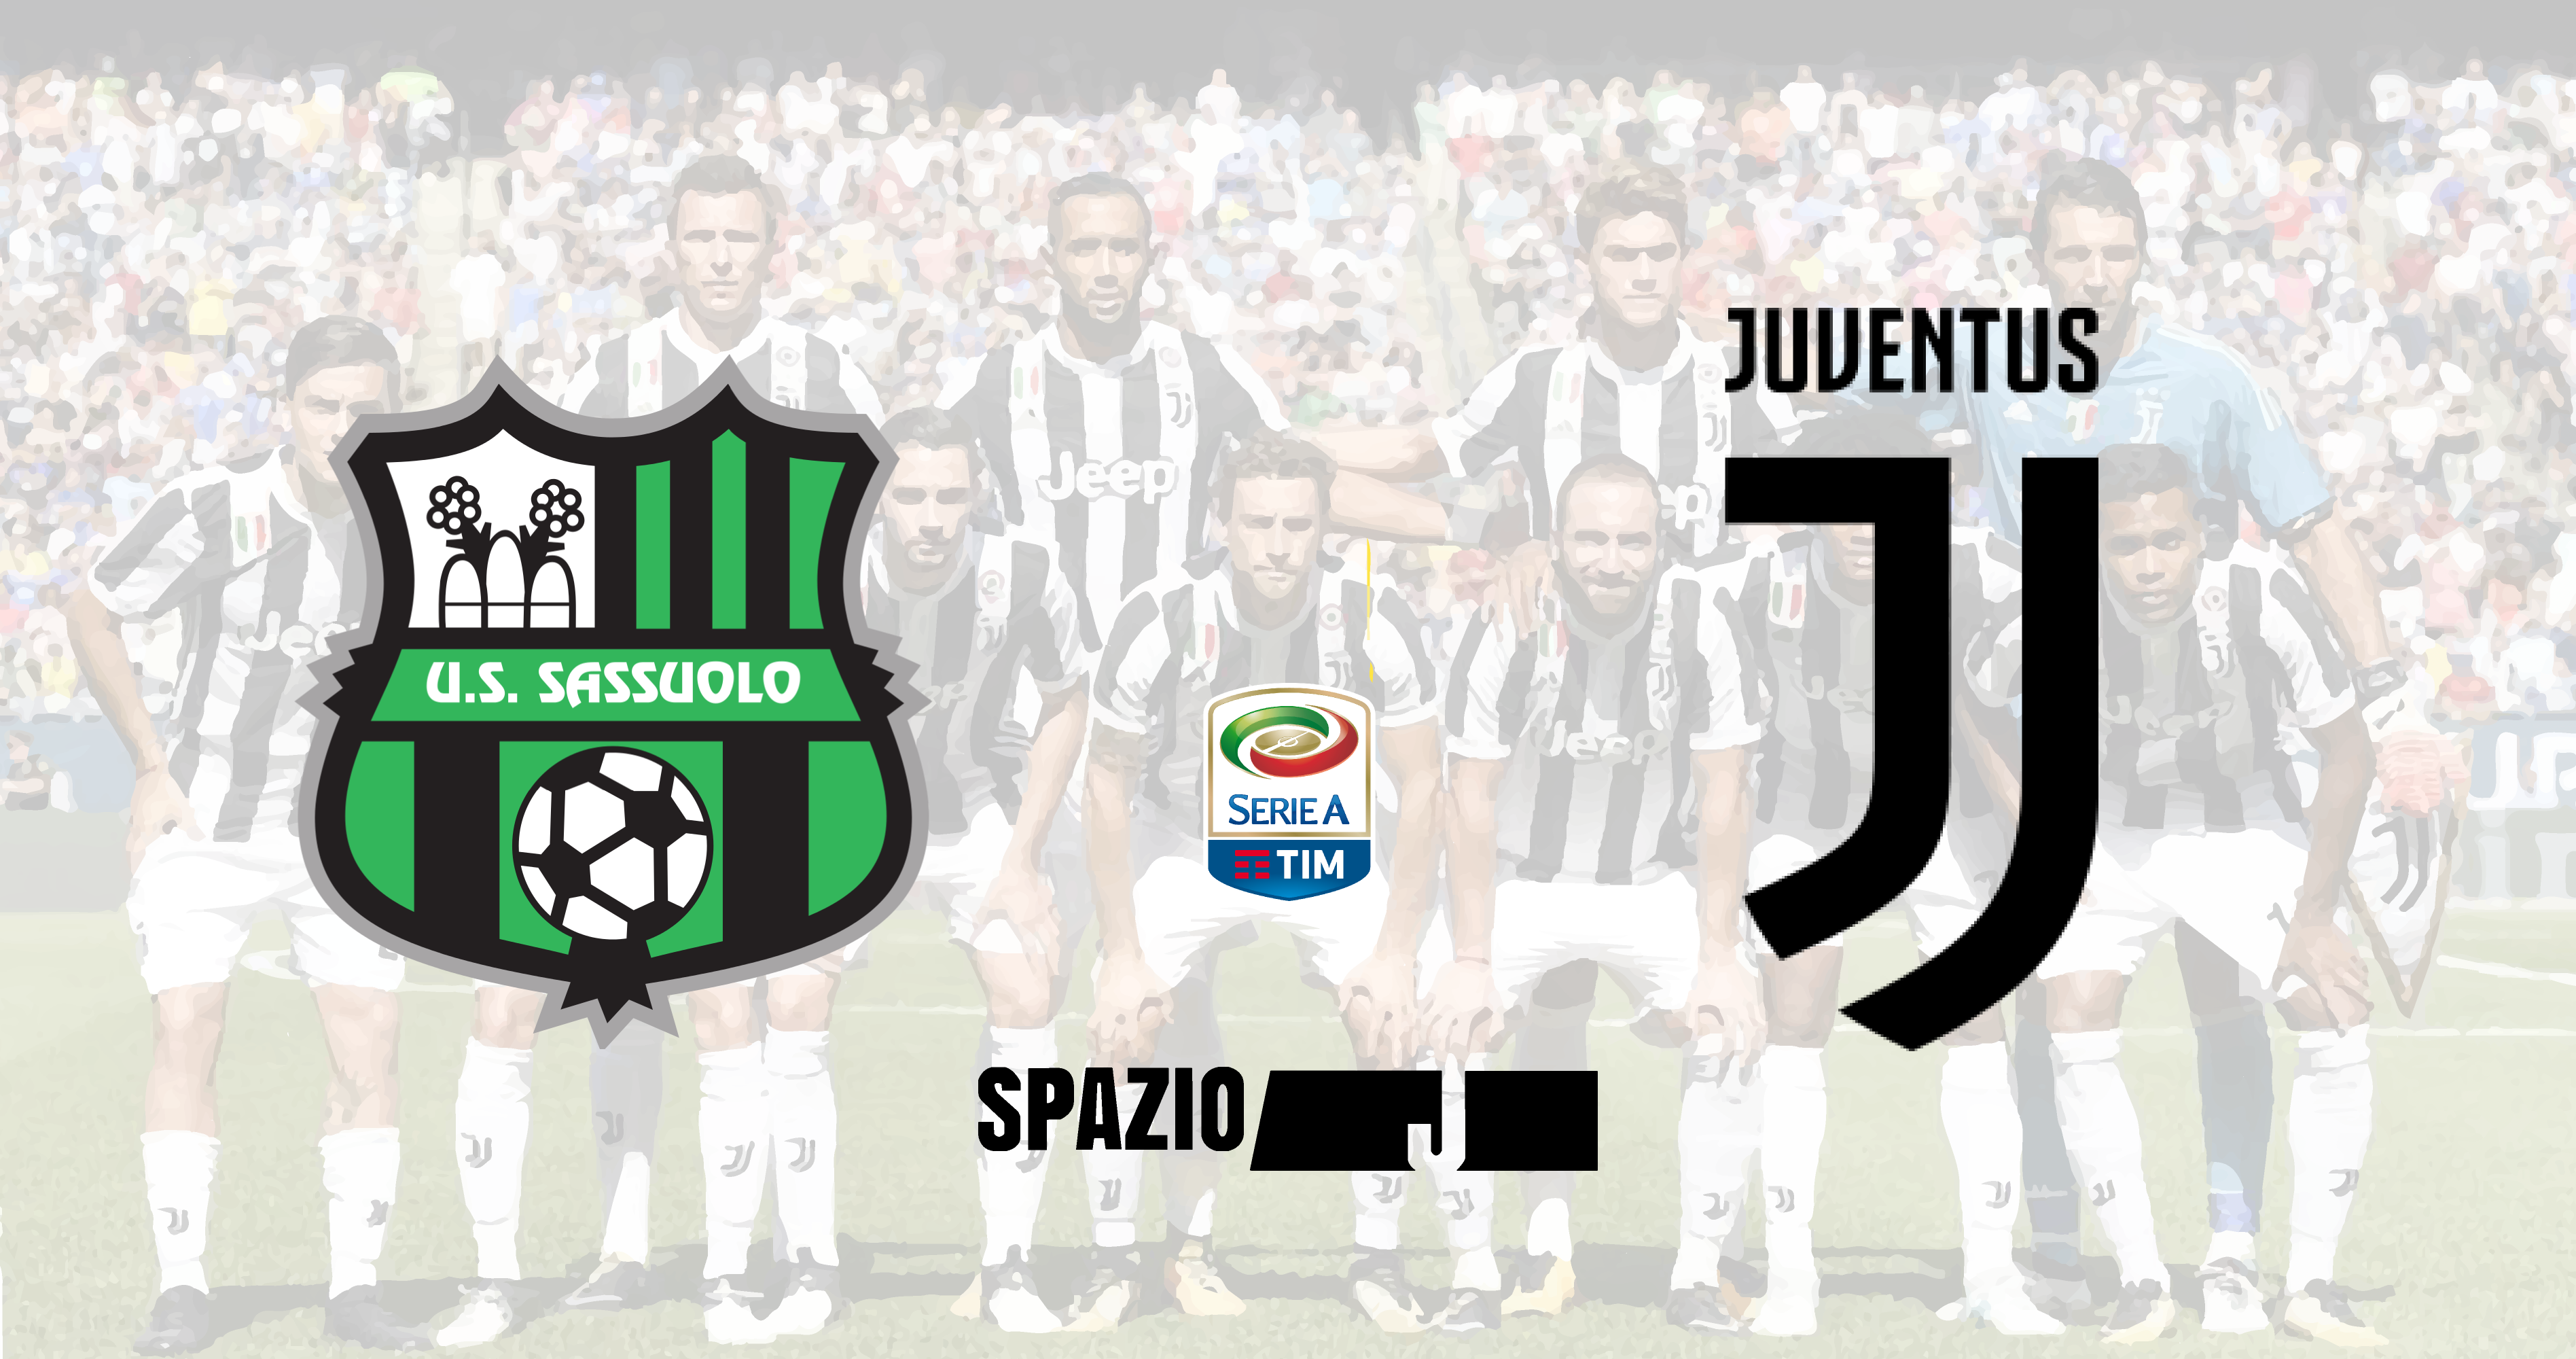 s rie a 4e journ e sassuolo juventus forum du site. Black Bedroom Furniture Sets. Home Design Ideas